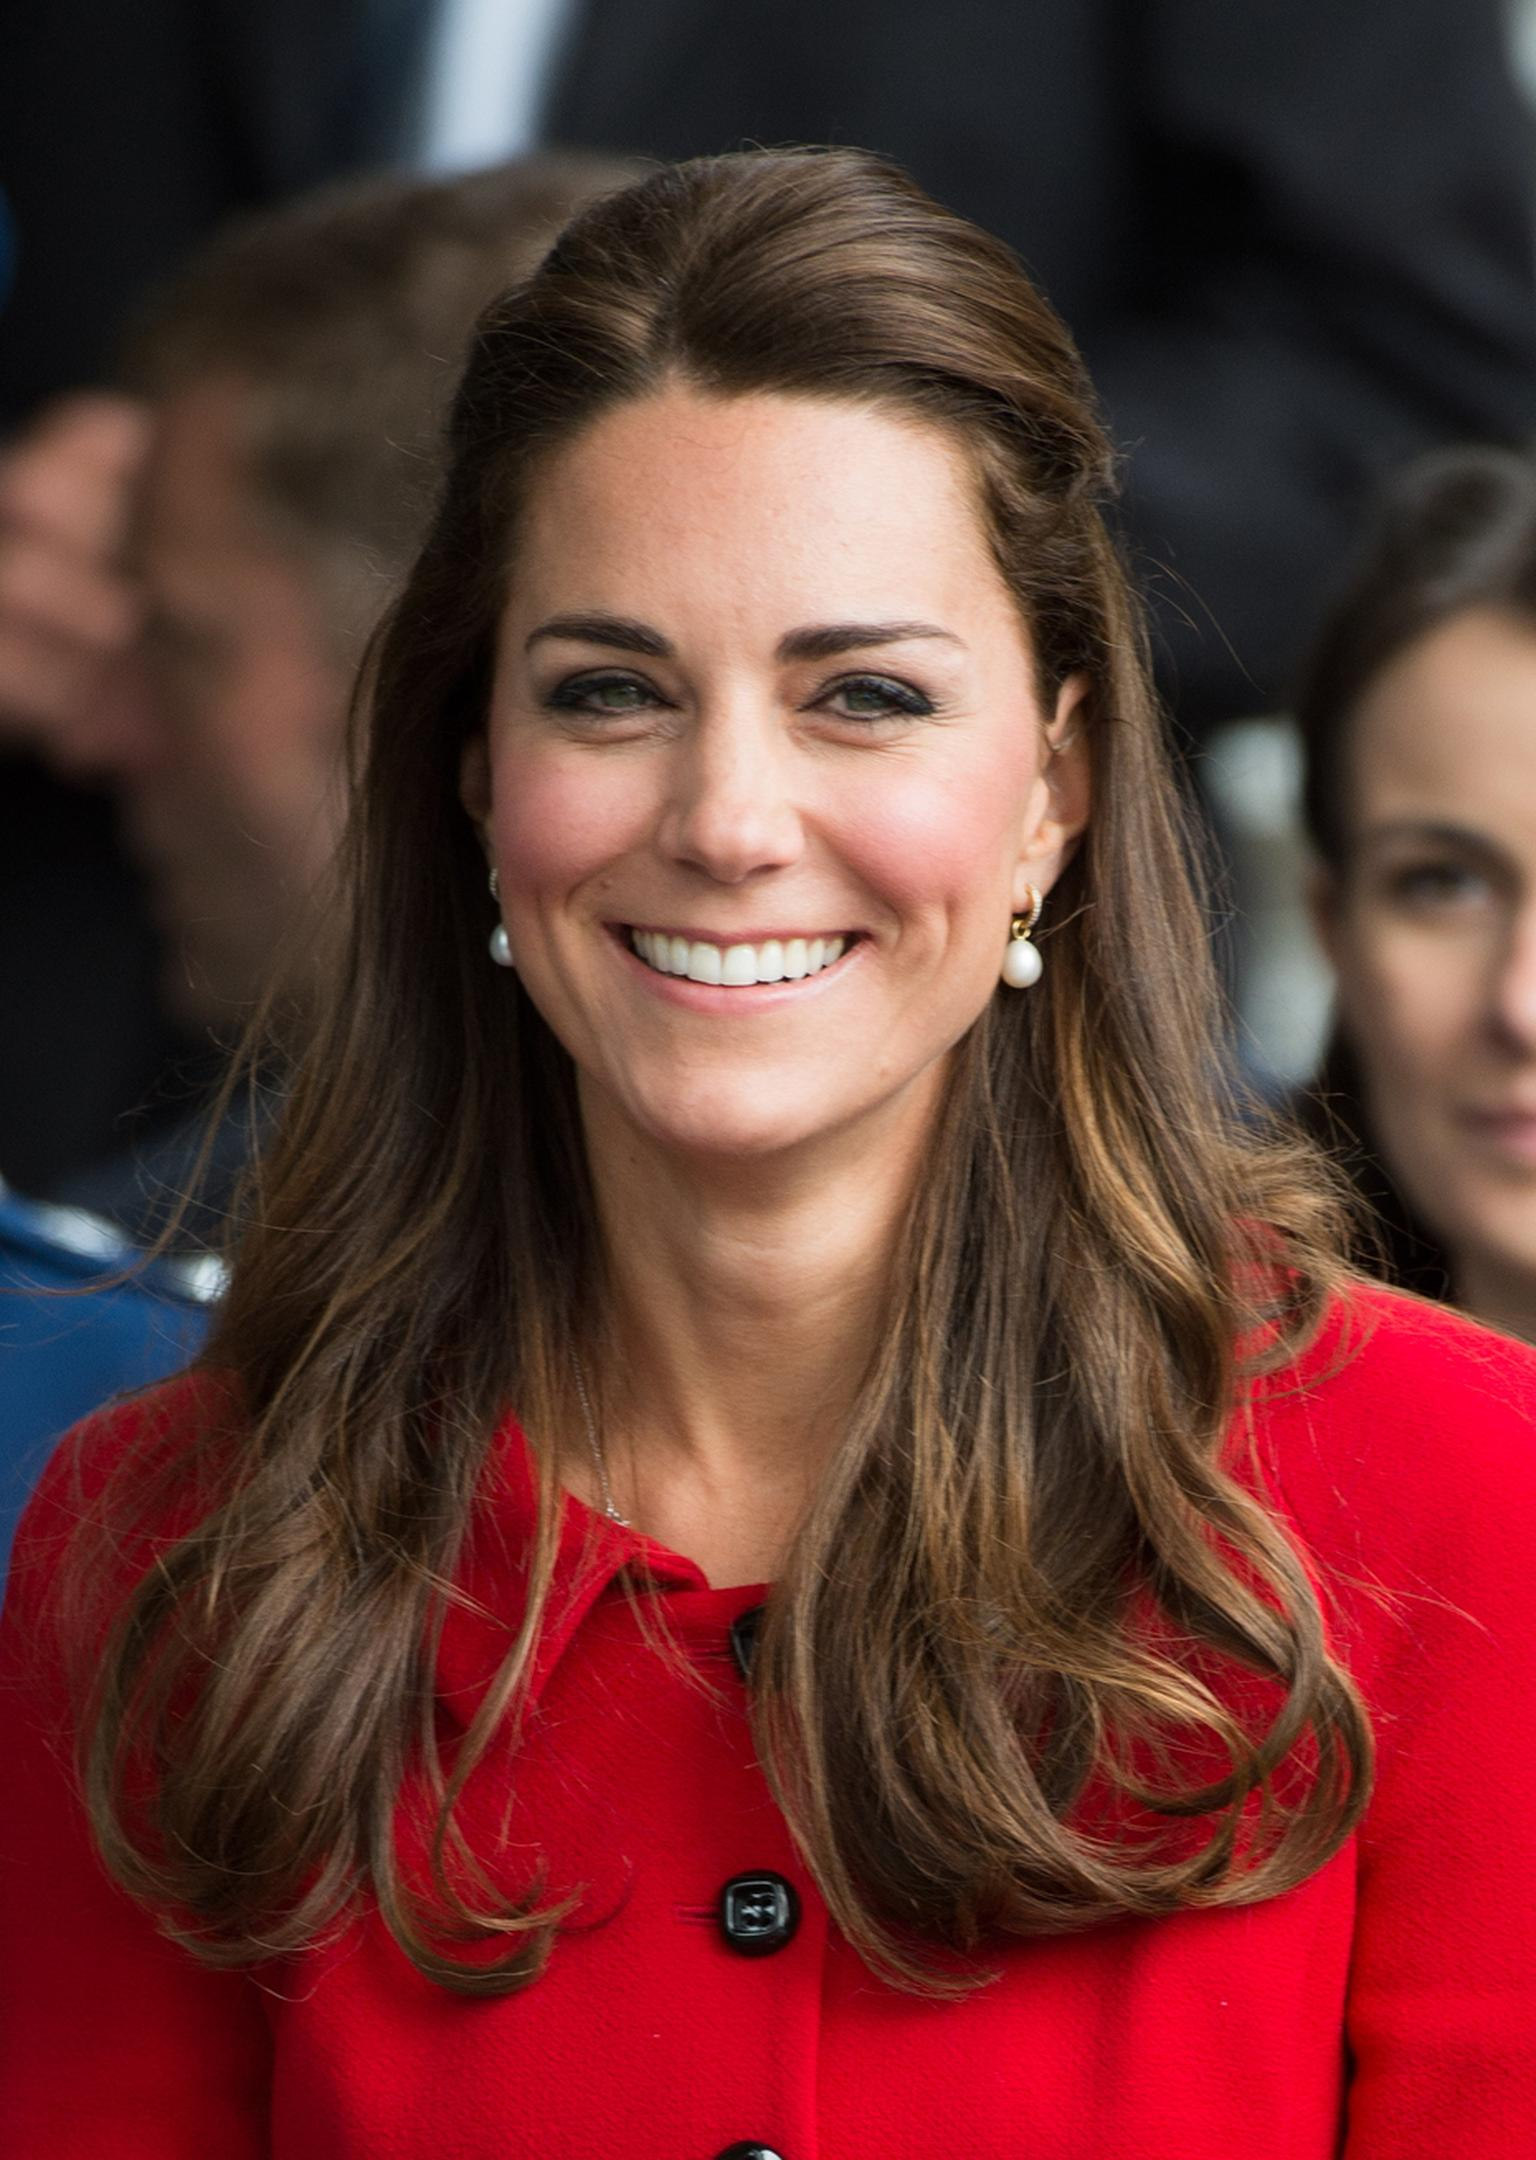 Kate Middleton, the Duchess of Cambridge, wearing Annoushka pearl drop earrings during the spring 2014 Royal Tour of Australia and New Zealand